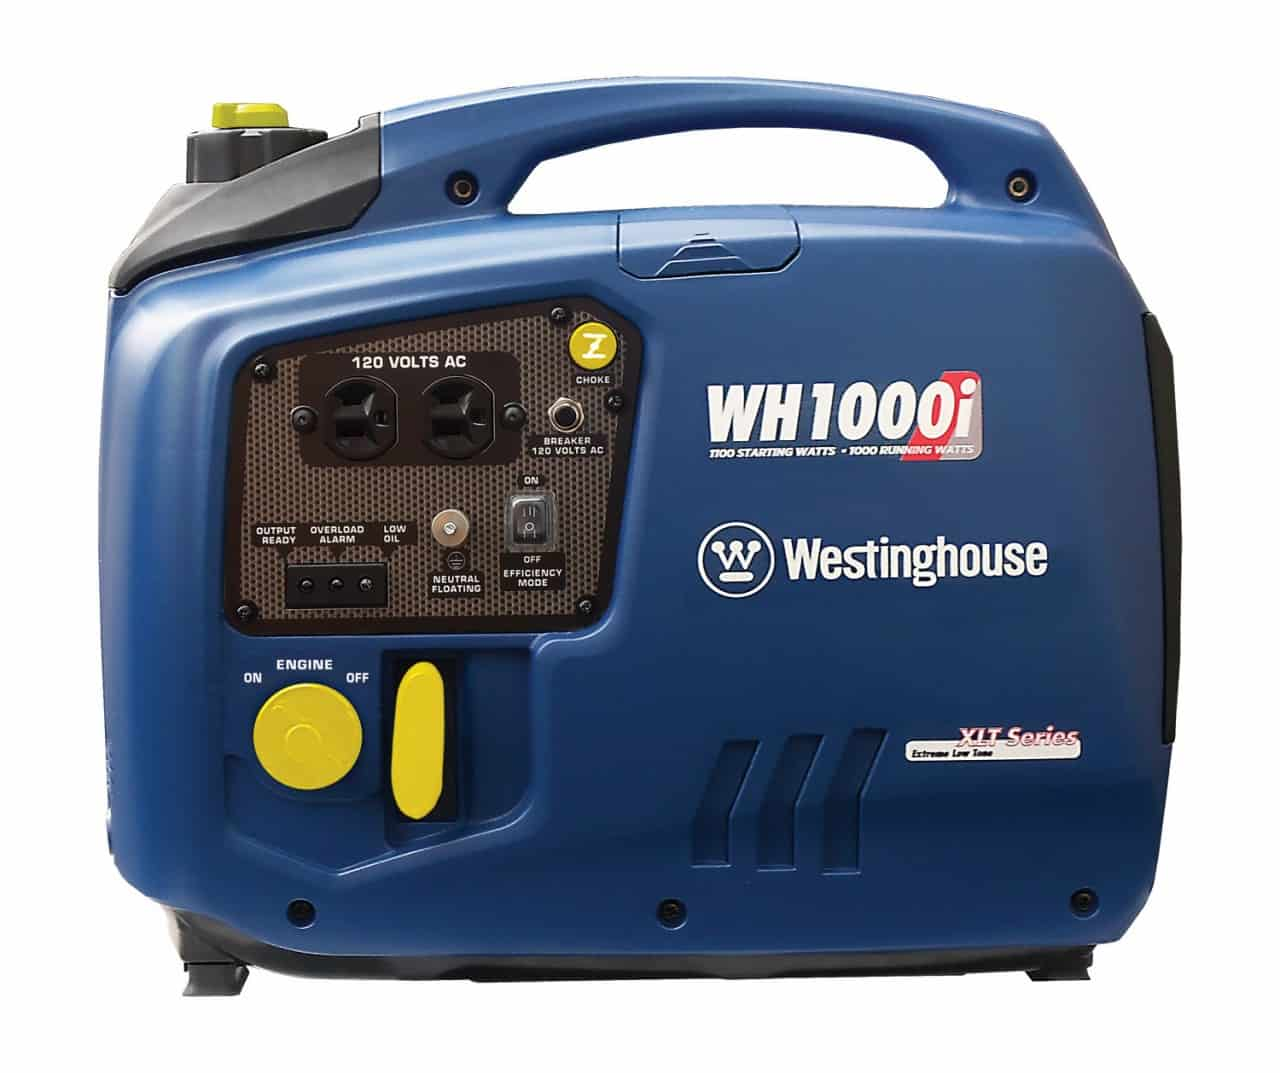 The Westinghouse WH1000i